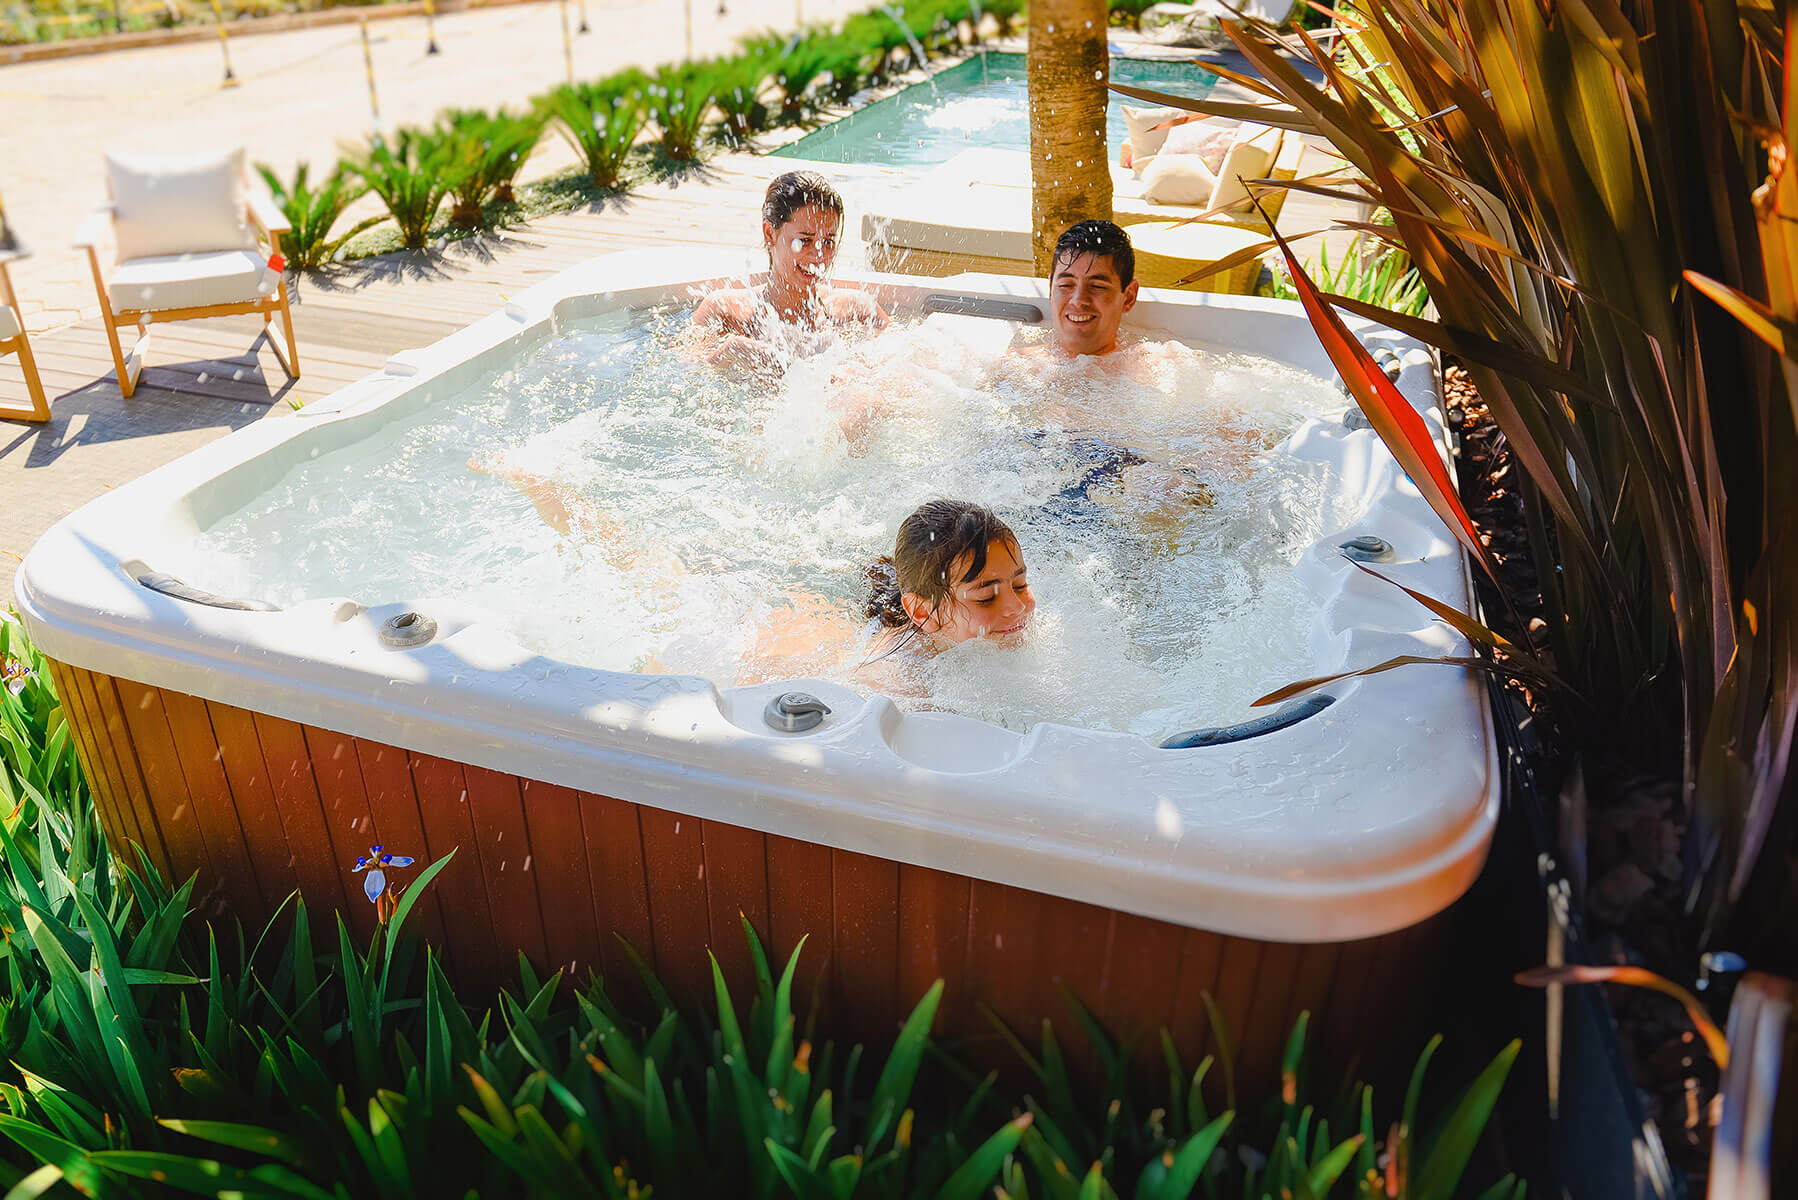 Luxury SPA leisure for 5 people